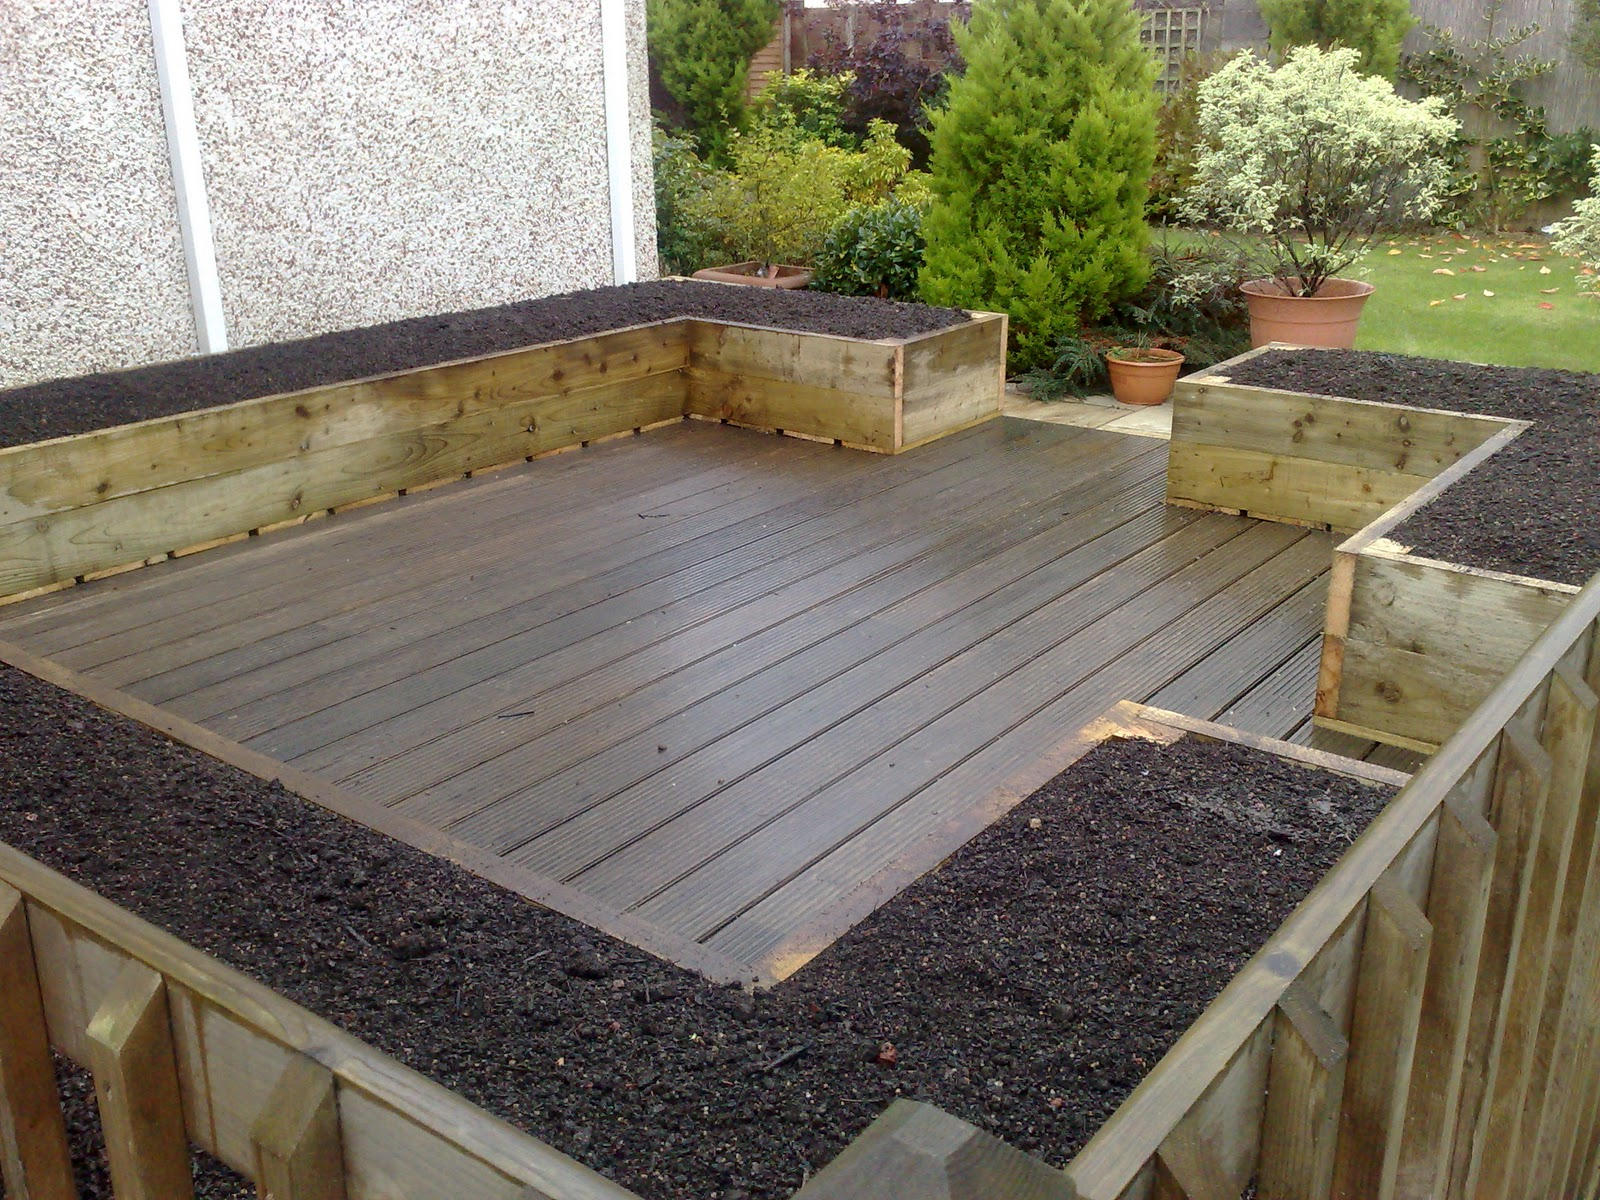 Backyard Raised Garden Ideas backyard raised garden ideas backyard raised bed garden ideas garden design with our backyard raised small Raised Vegetable Garden Beds Why Why Not Have A Look For Yourself By